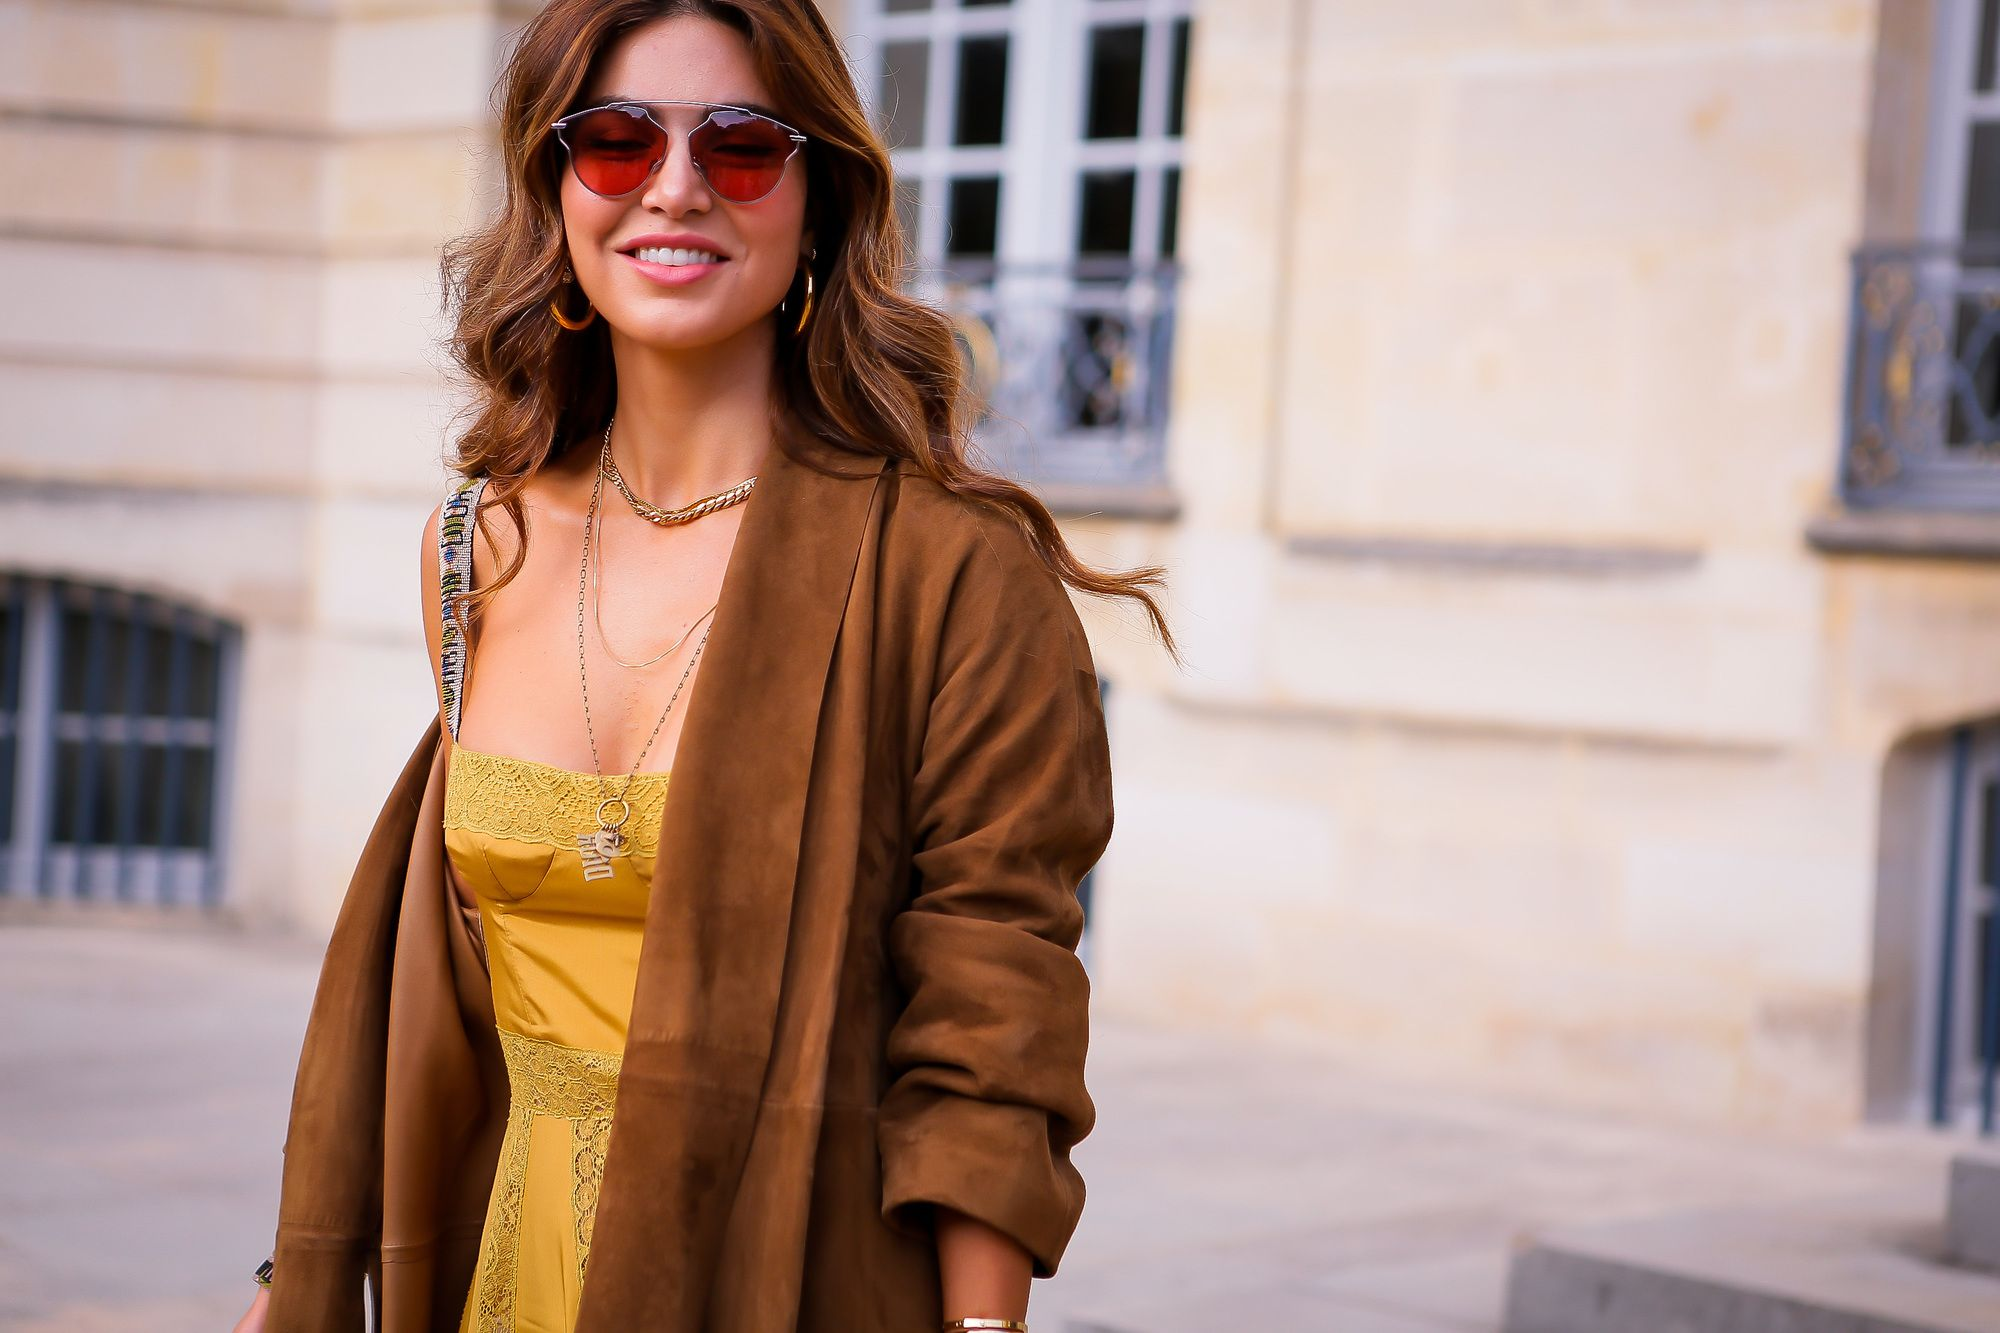 street style paris fashion week shot of a woman with curly cinammon brown hair